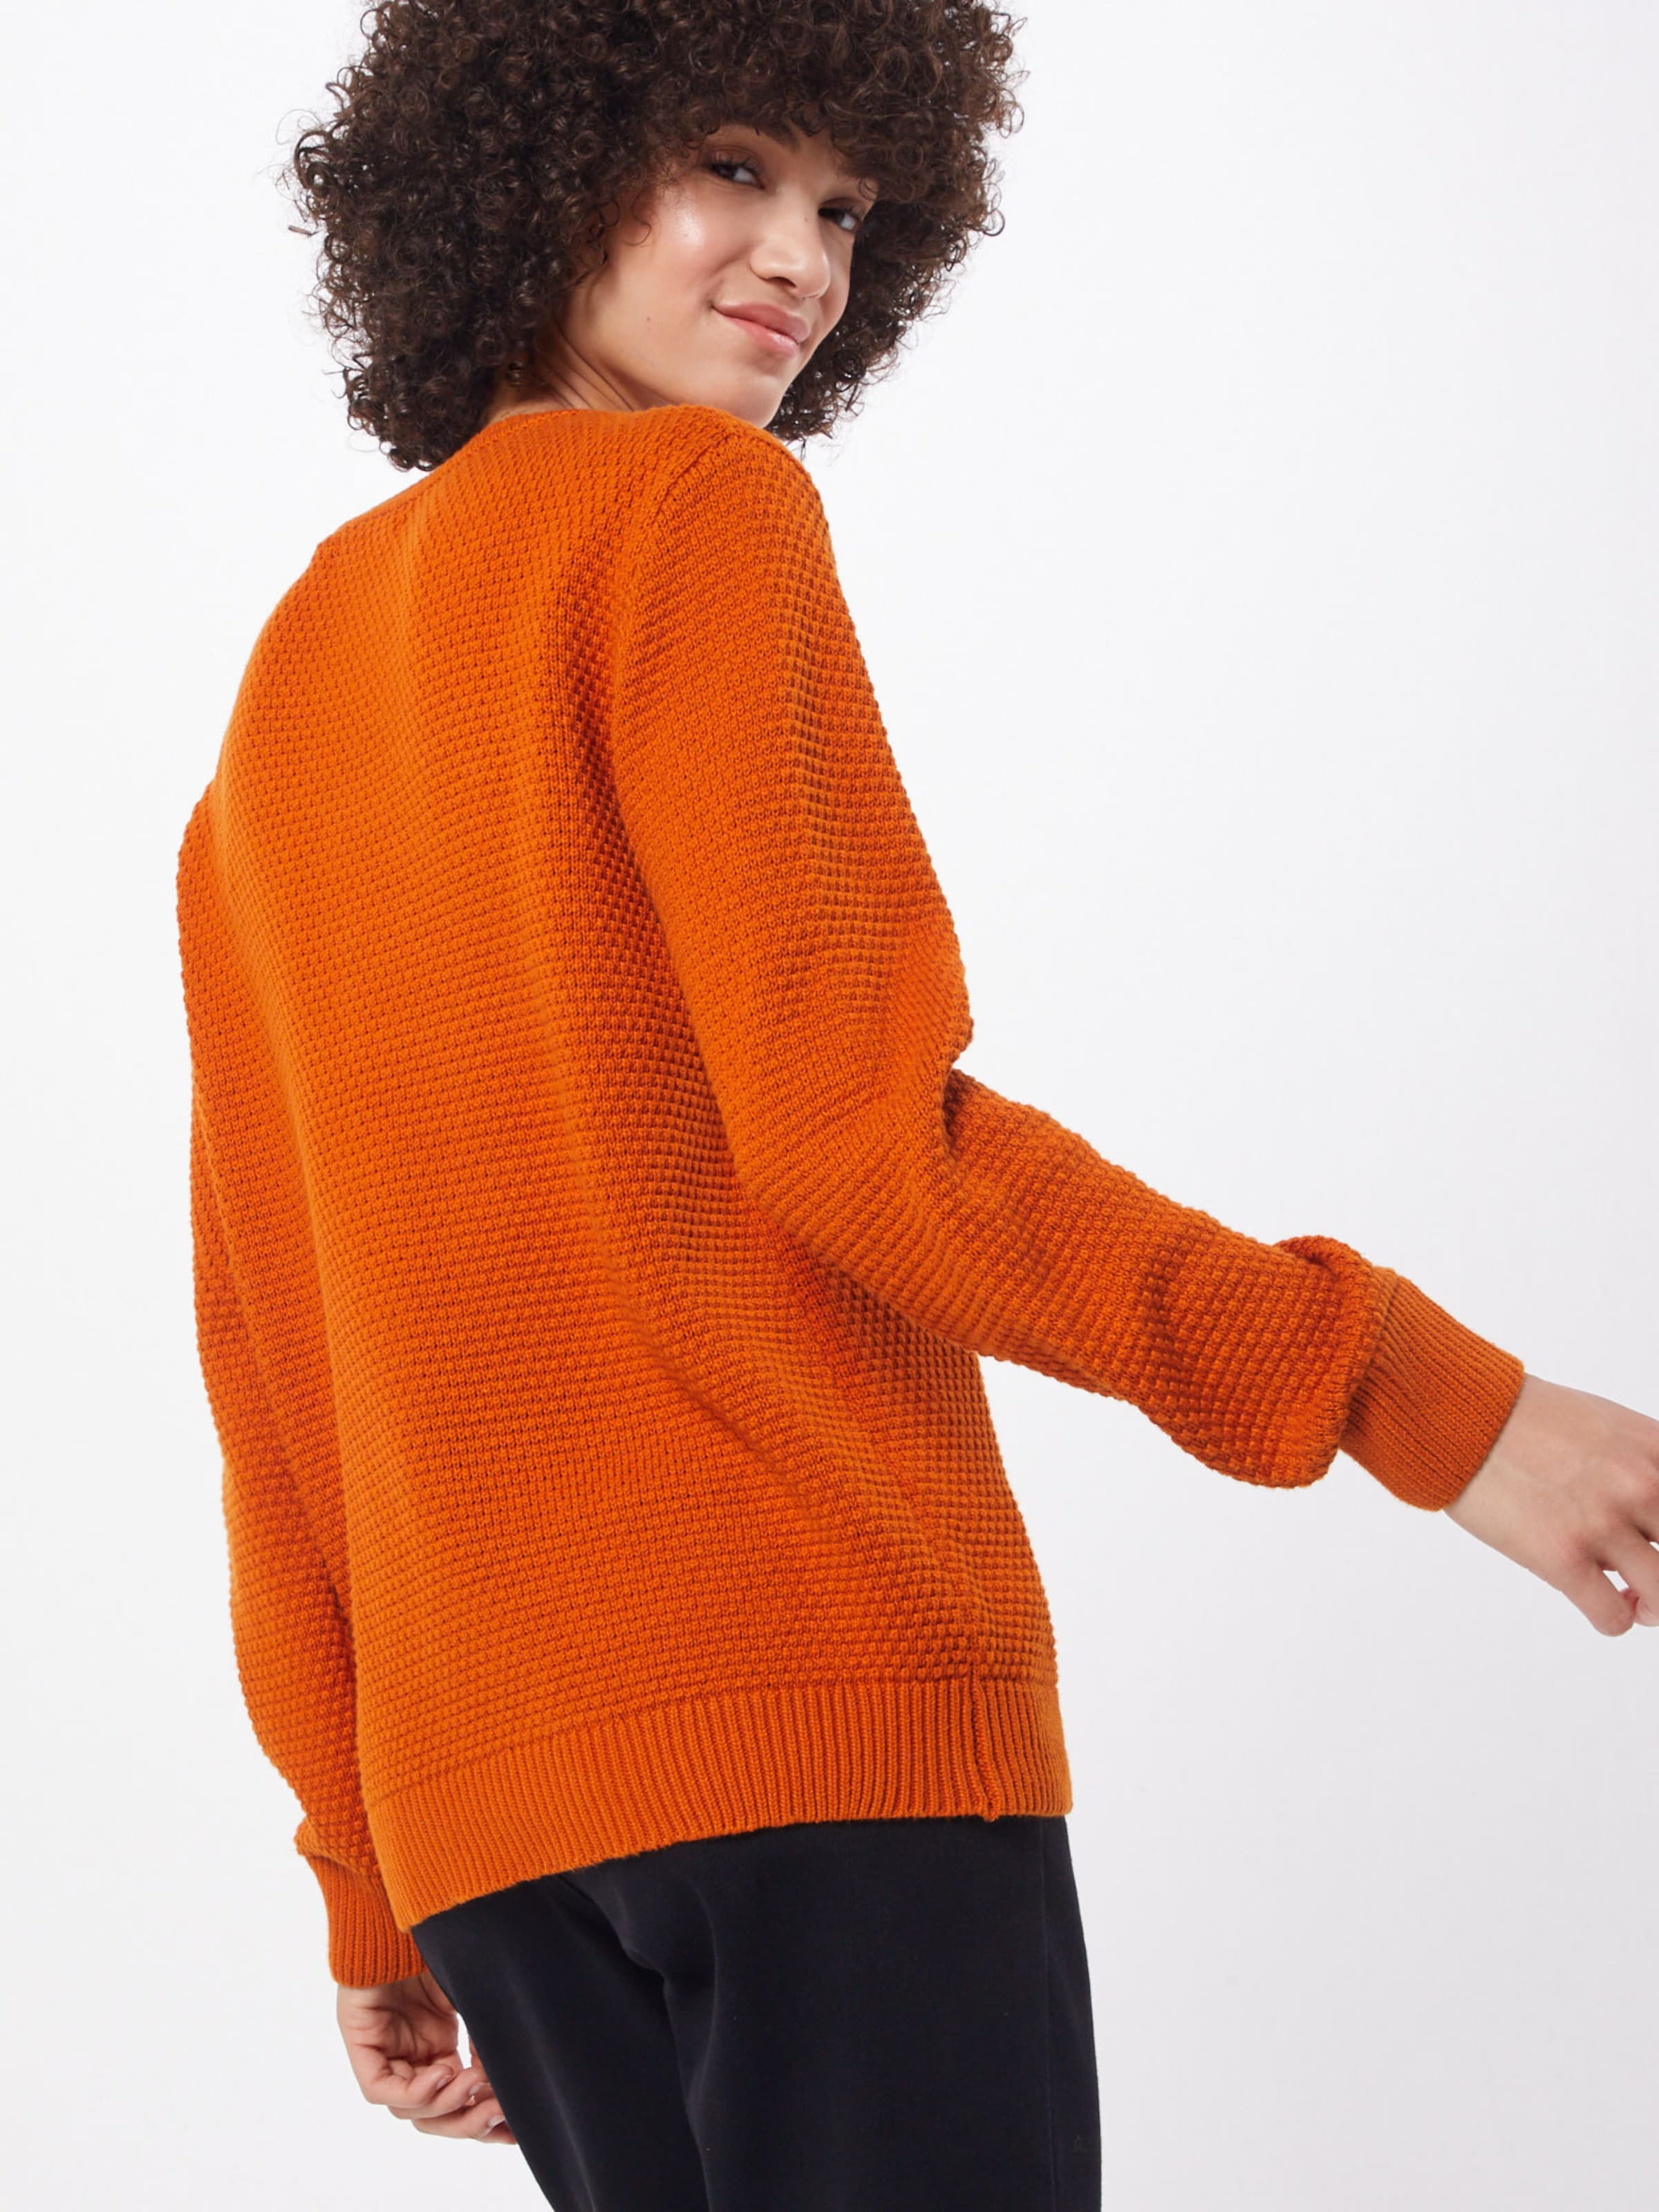 B young 'mikala' In Pullover Orange nv0N8wm